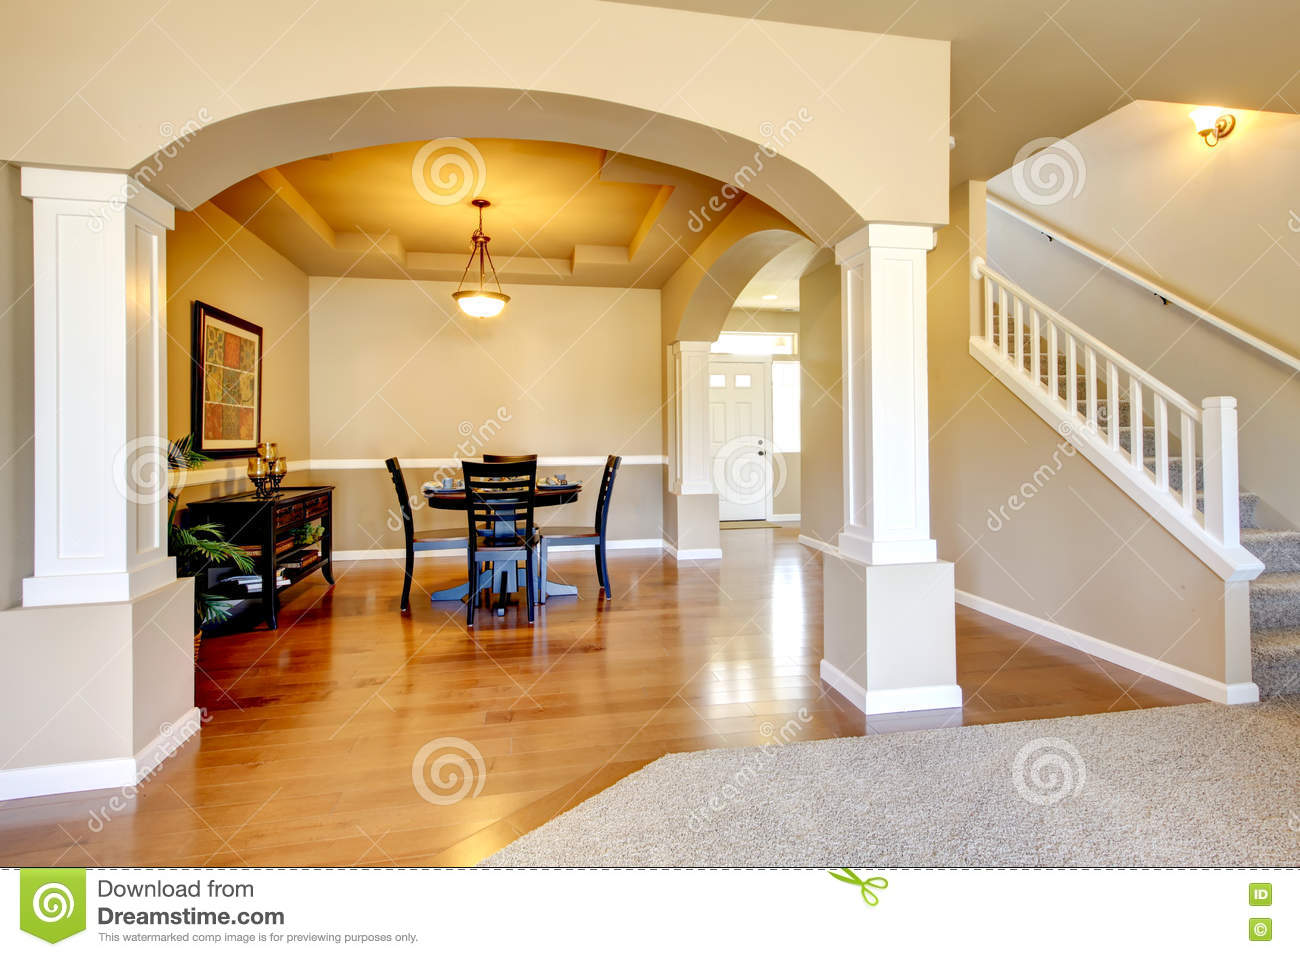 Spacious Dining Room With White Columns And Beige Tray Ceiling Stock Photo Image 75280132